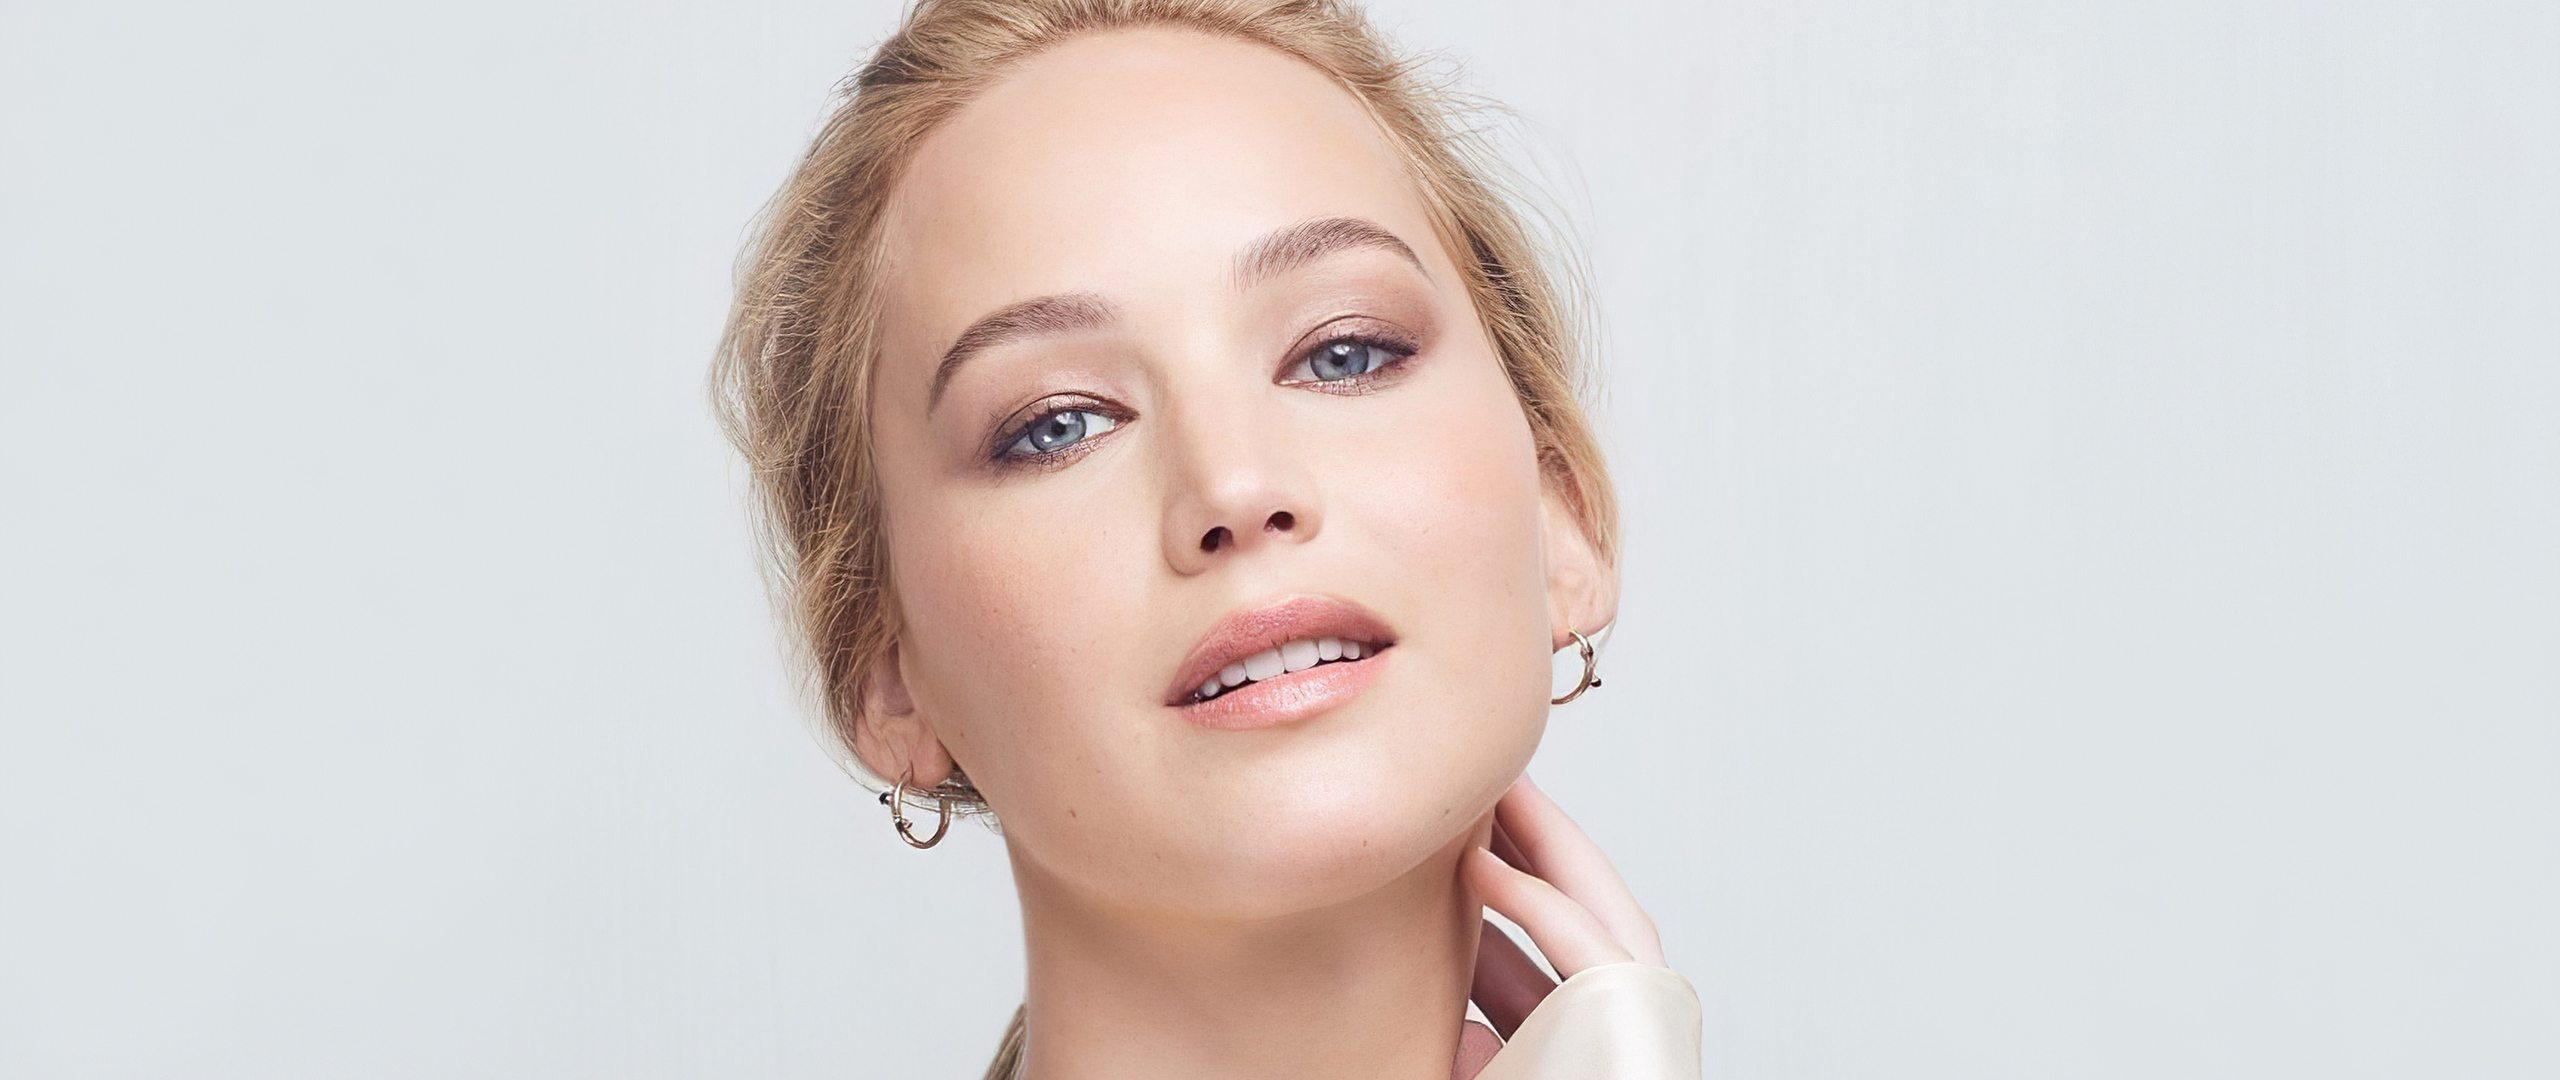 jennifer-lawrence-for-amazon-conservation-2019-jz.jpg